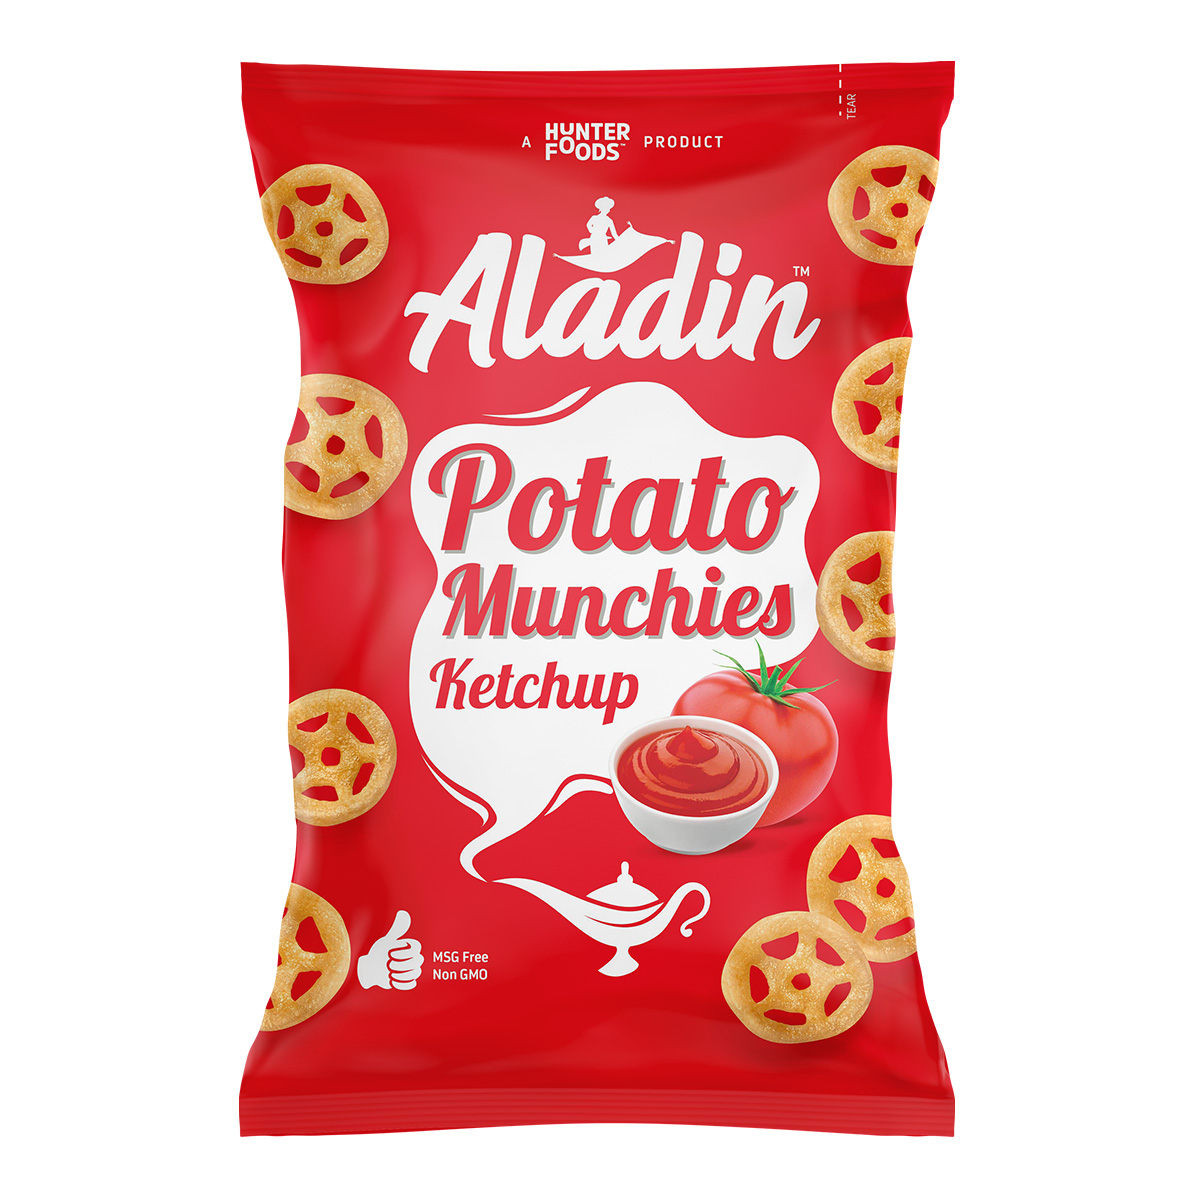 aladin-potato-munchies-ketchup-60gm